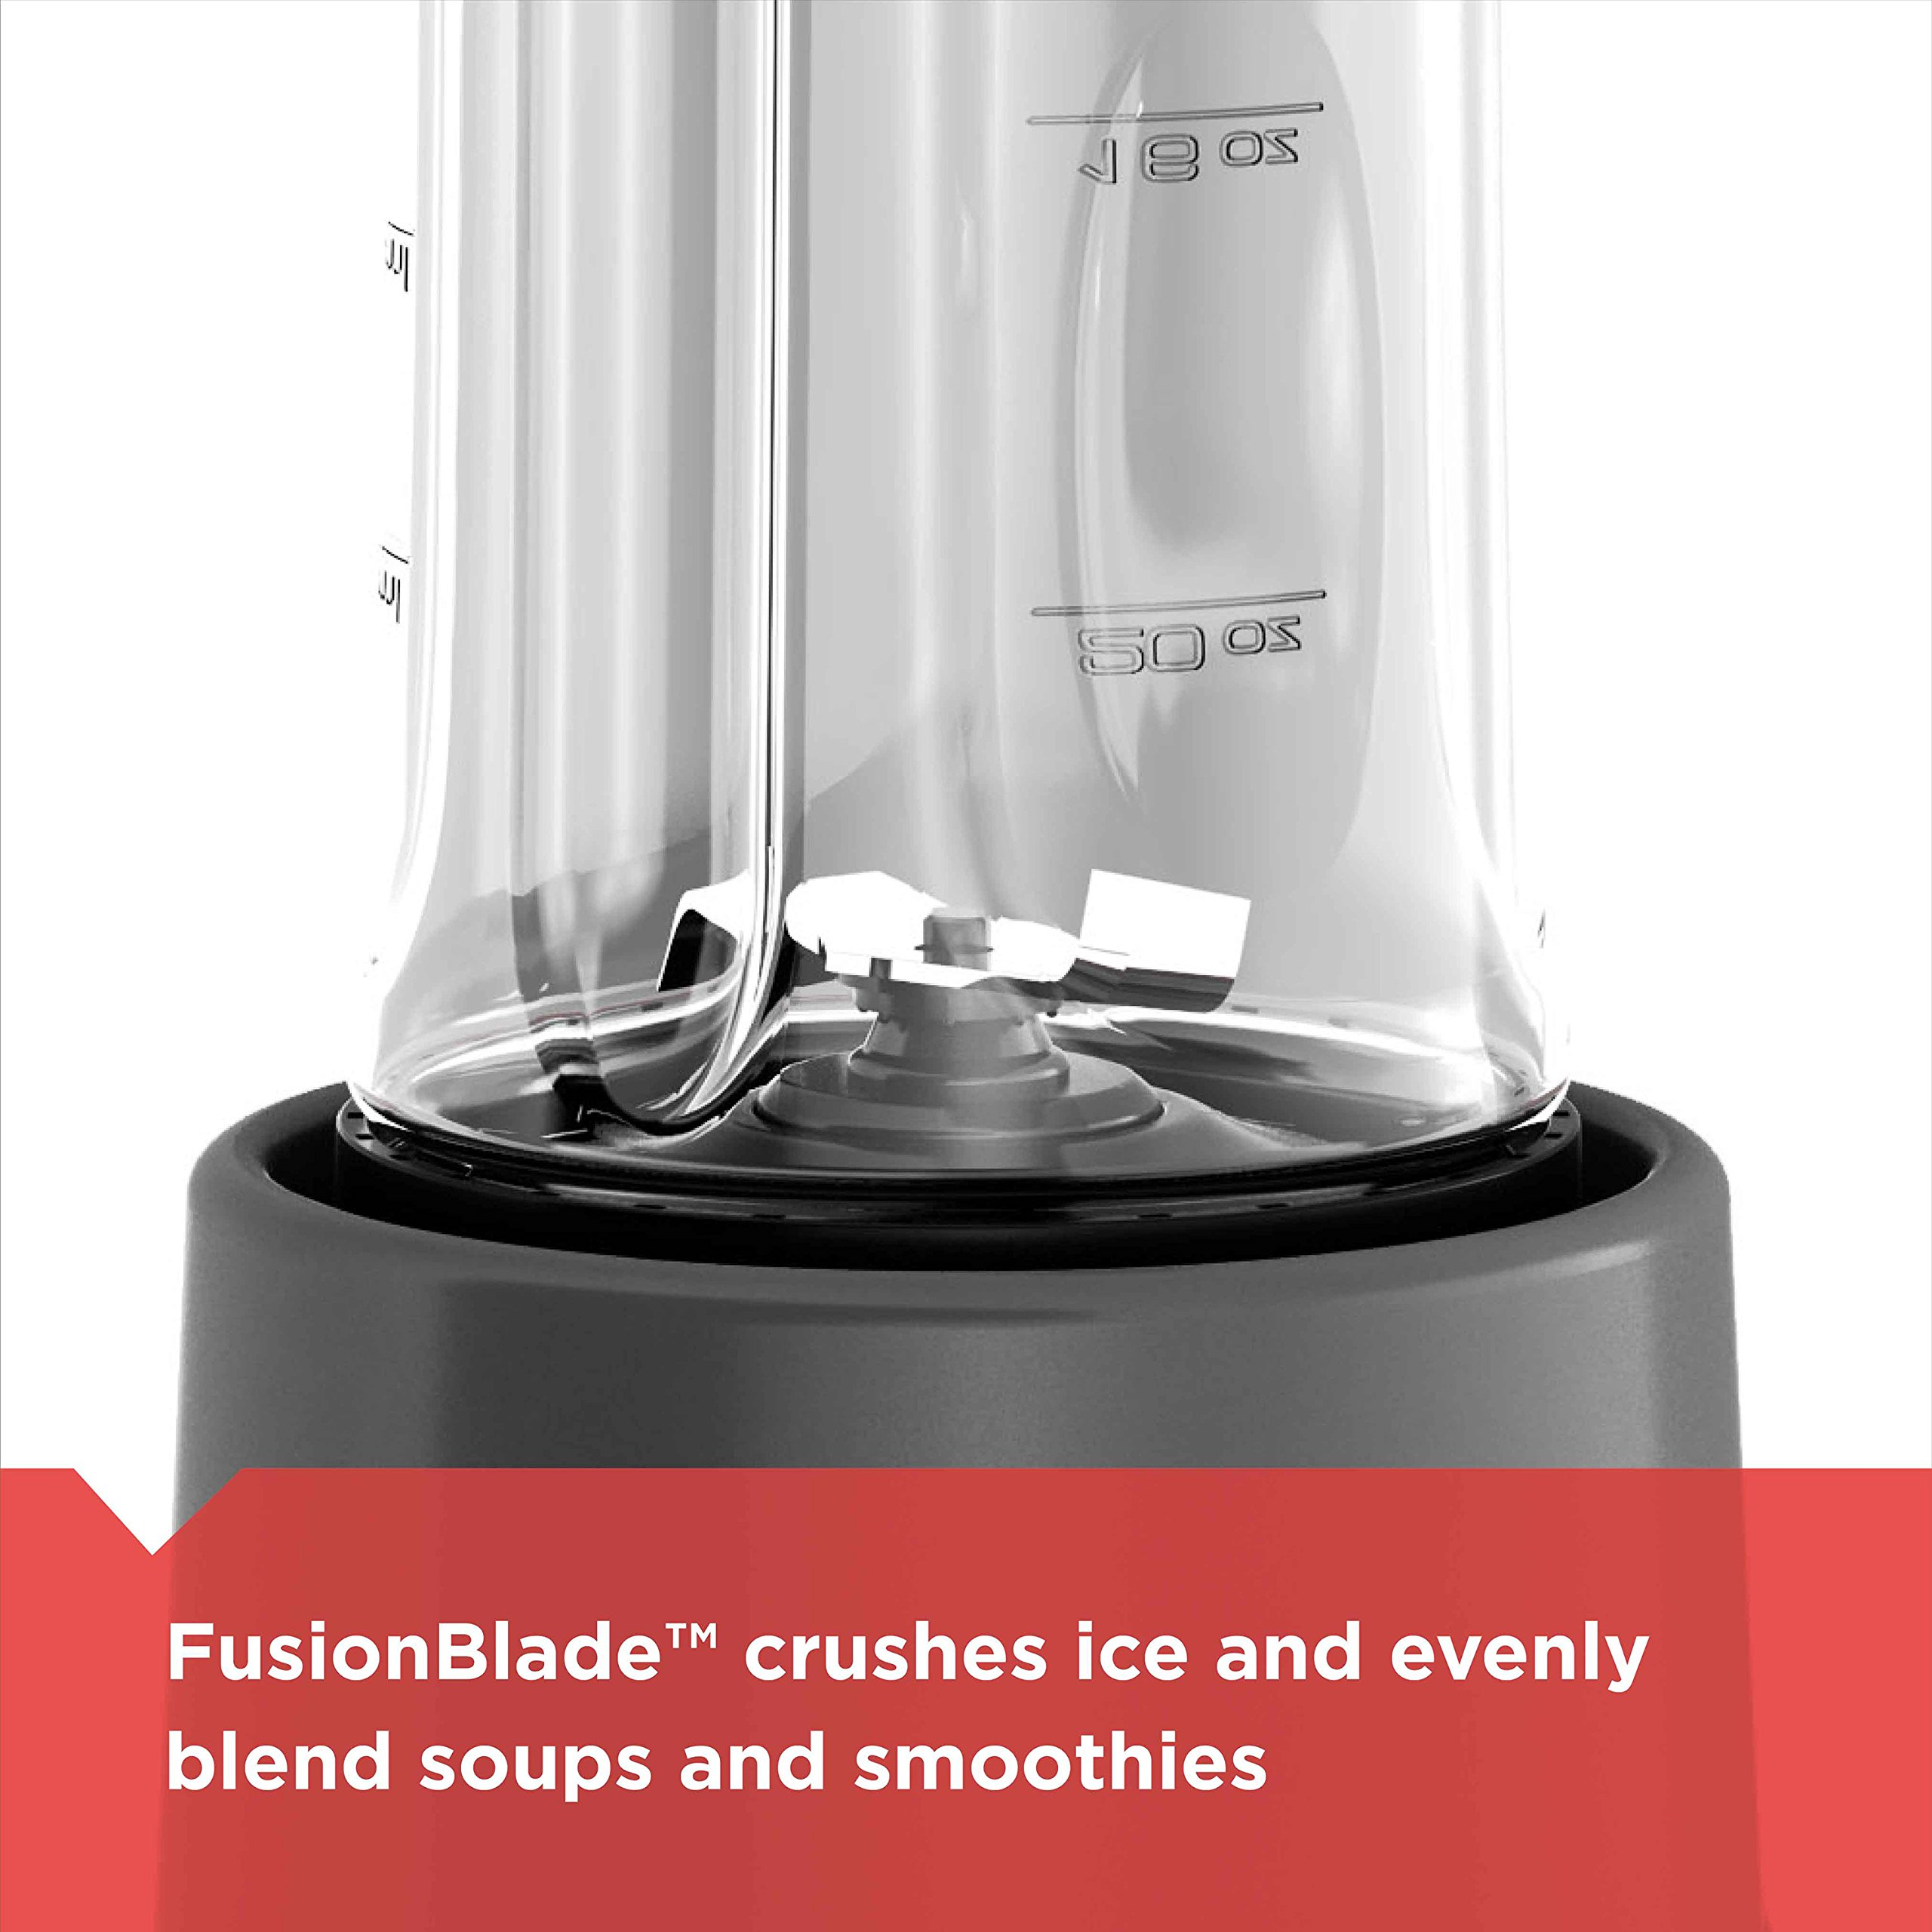 BLACK+DECKER FusionBlade Personal Blender with Two 20oz Personal Blending Jars, Gray, PB1002G by BLACK+DECKER (Image #3)